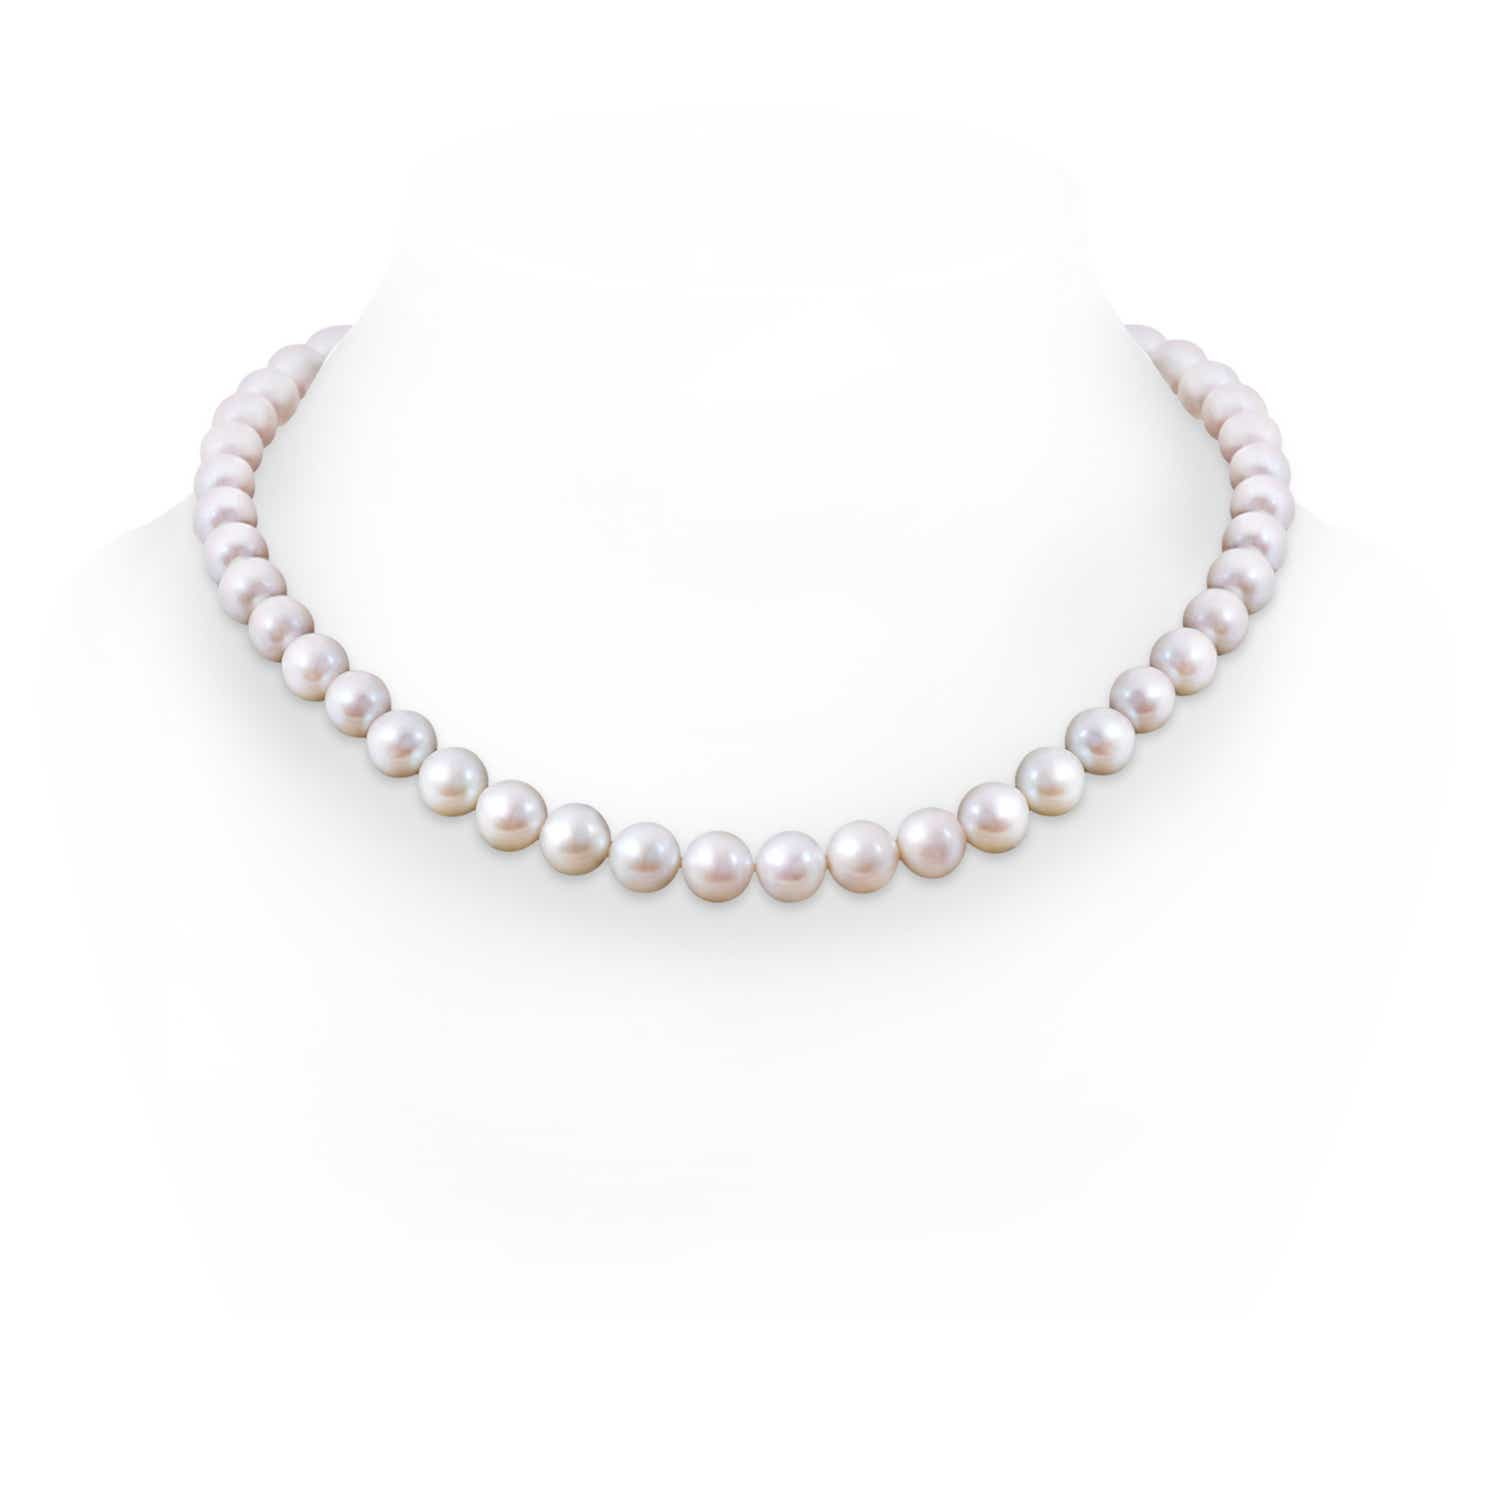 Angara 20 Classic Freshwater Cultured Pearl Necklace fLrbuE